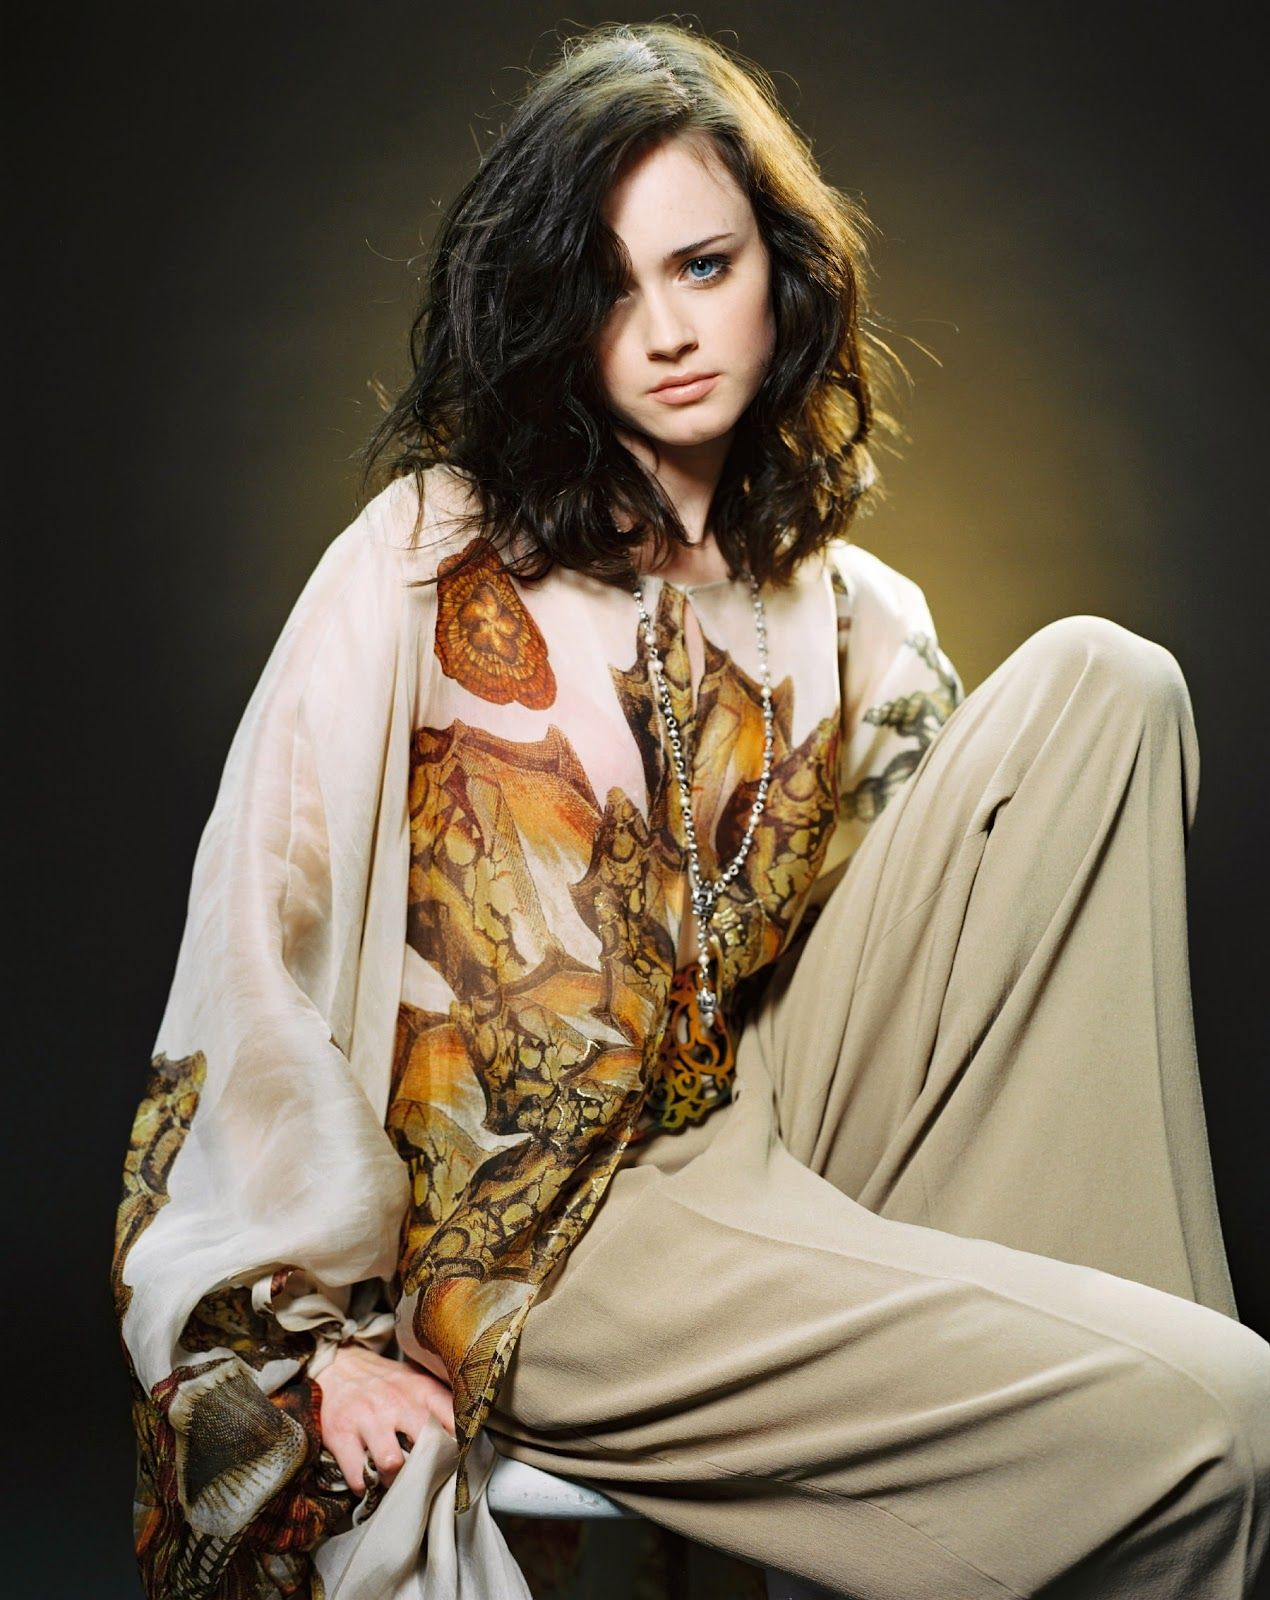 Pin On Stars Hollow Alexis bledel hd wallpapers hd images